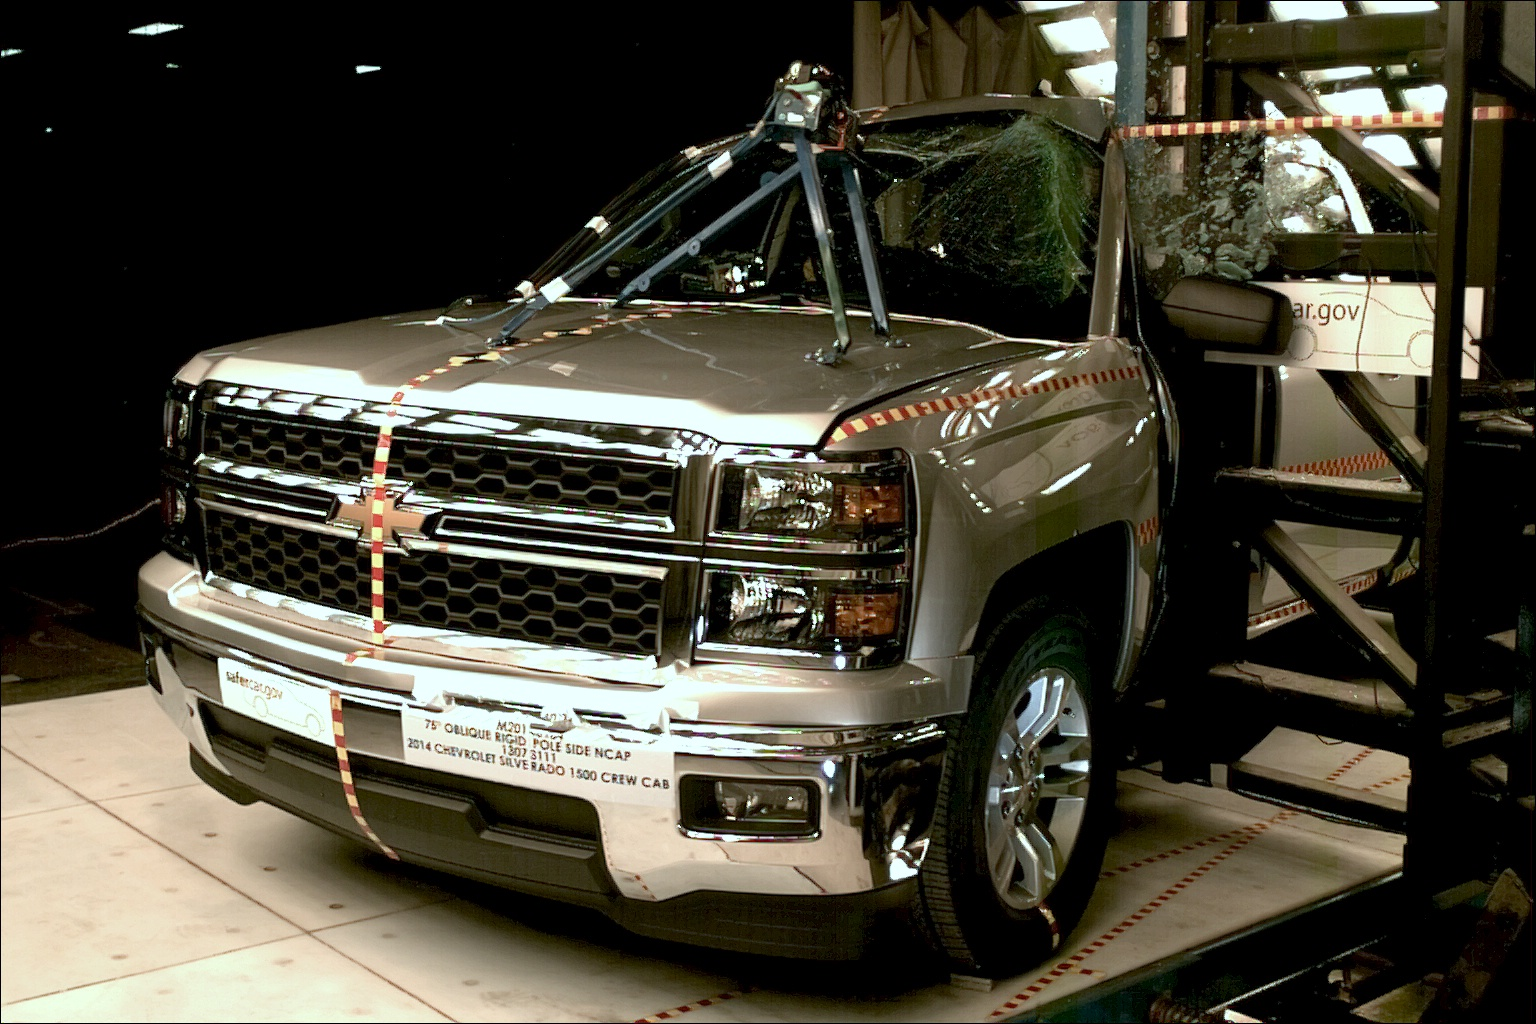 NCAP 2014 Chevrolet Silverado 1500 side pole crash test photo